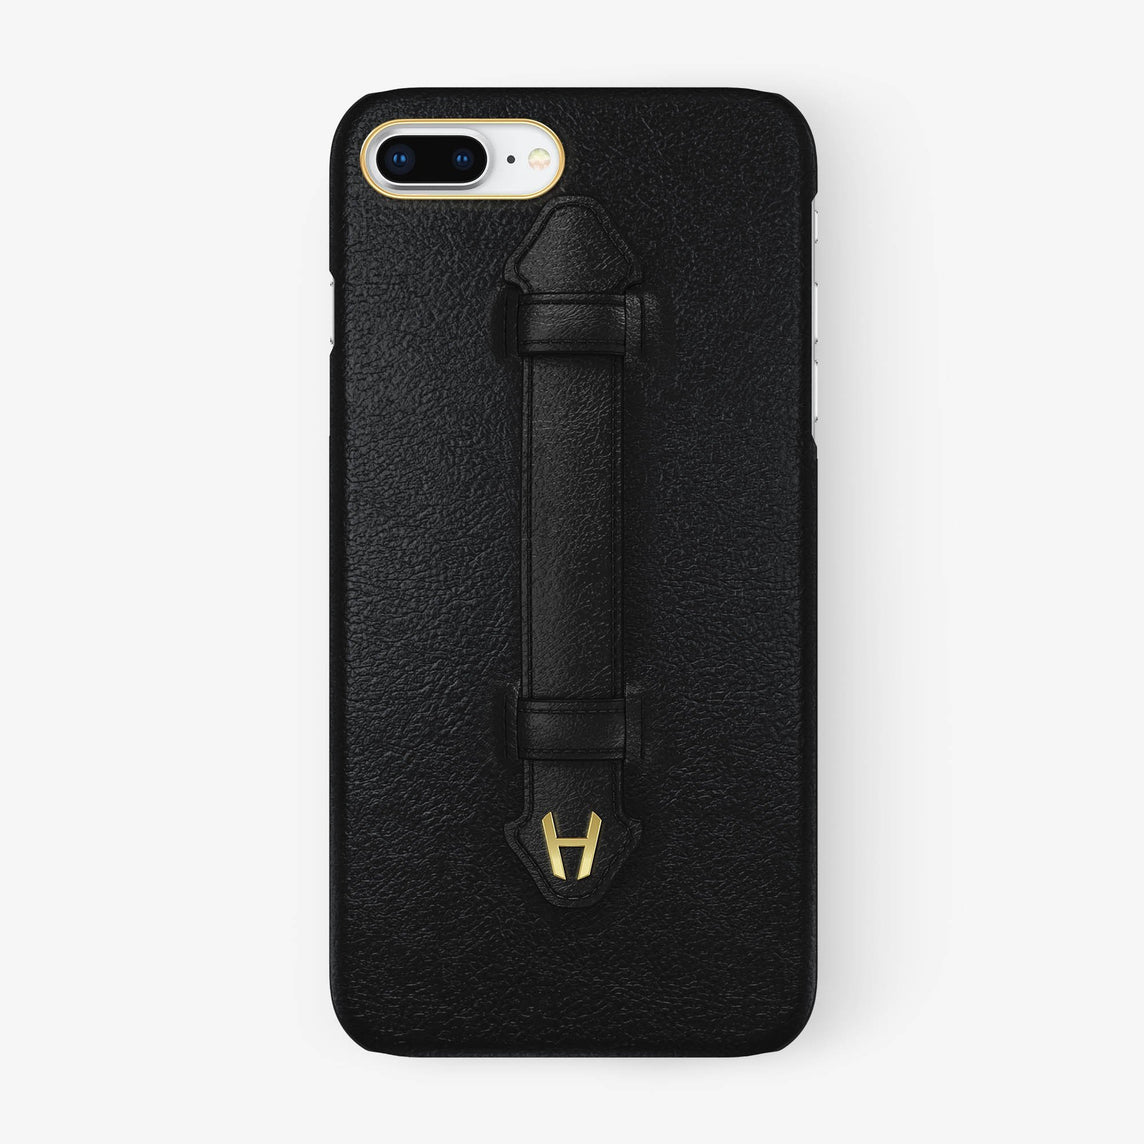 Black Calfskin iPhone Finger Case for iPhone 7/8 Plus finishing yellow gold - Hadoro Luxury Cases